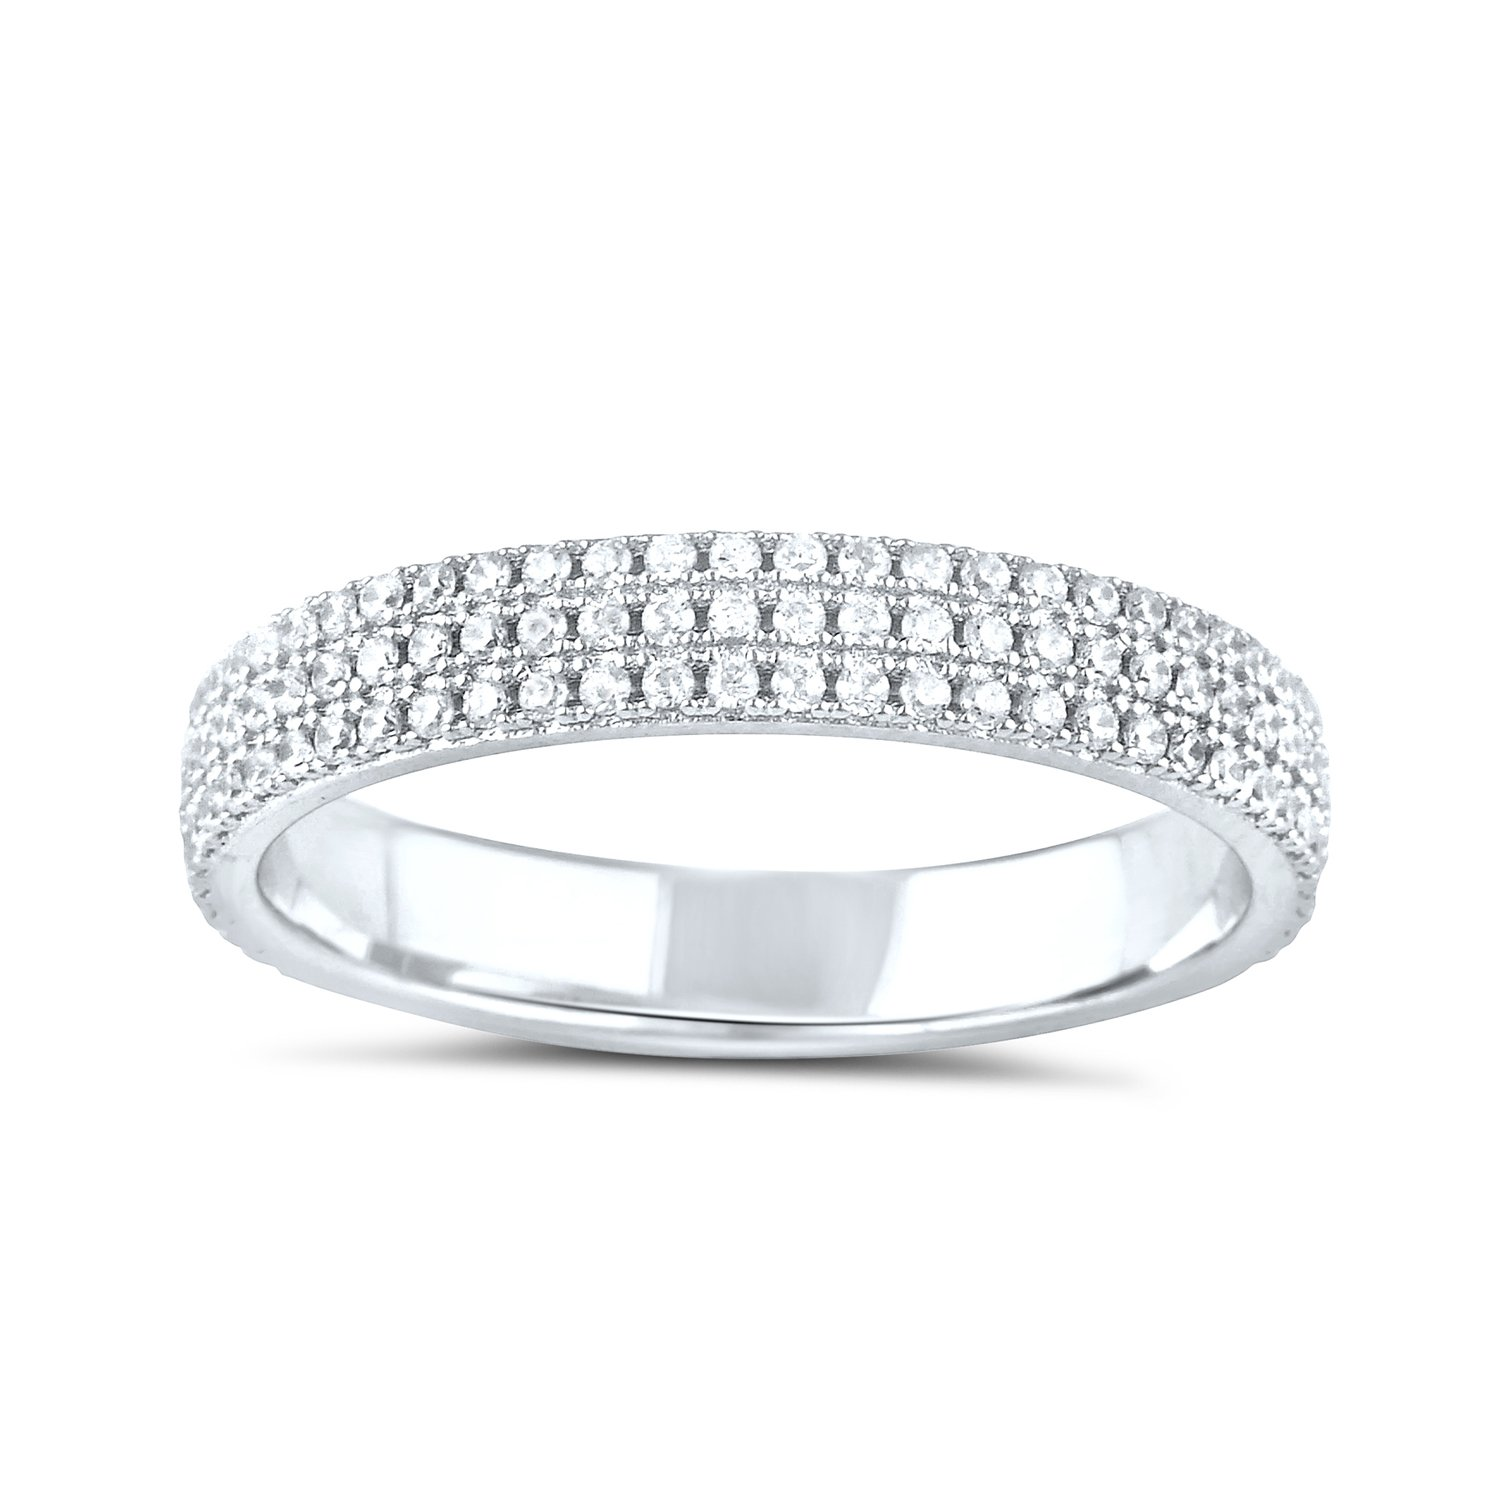 Sterling Silver Simulated Diamond Eternity Ring - Size 7